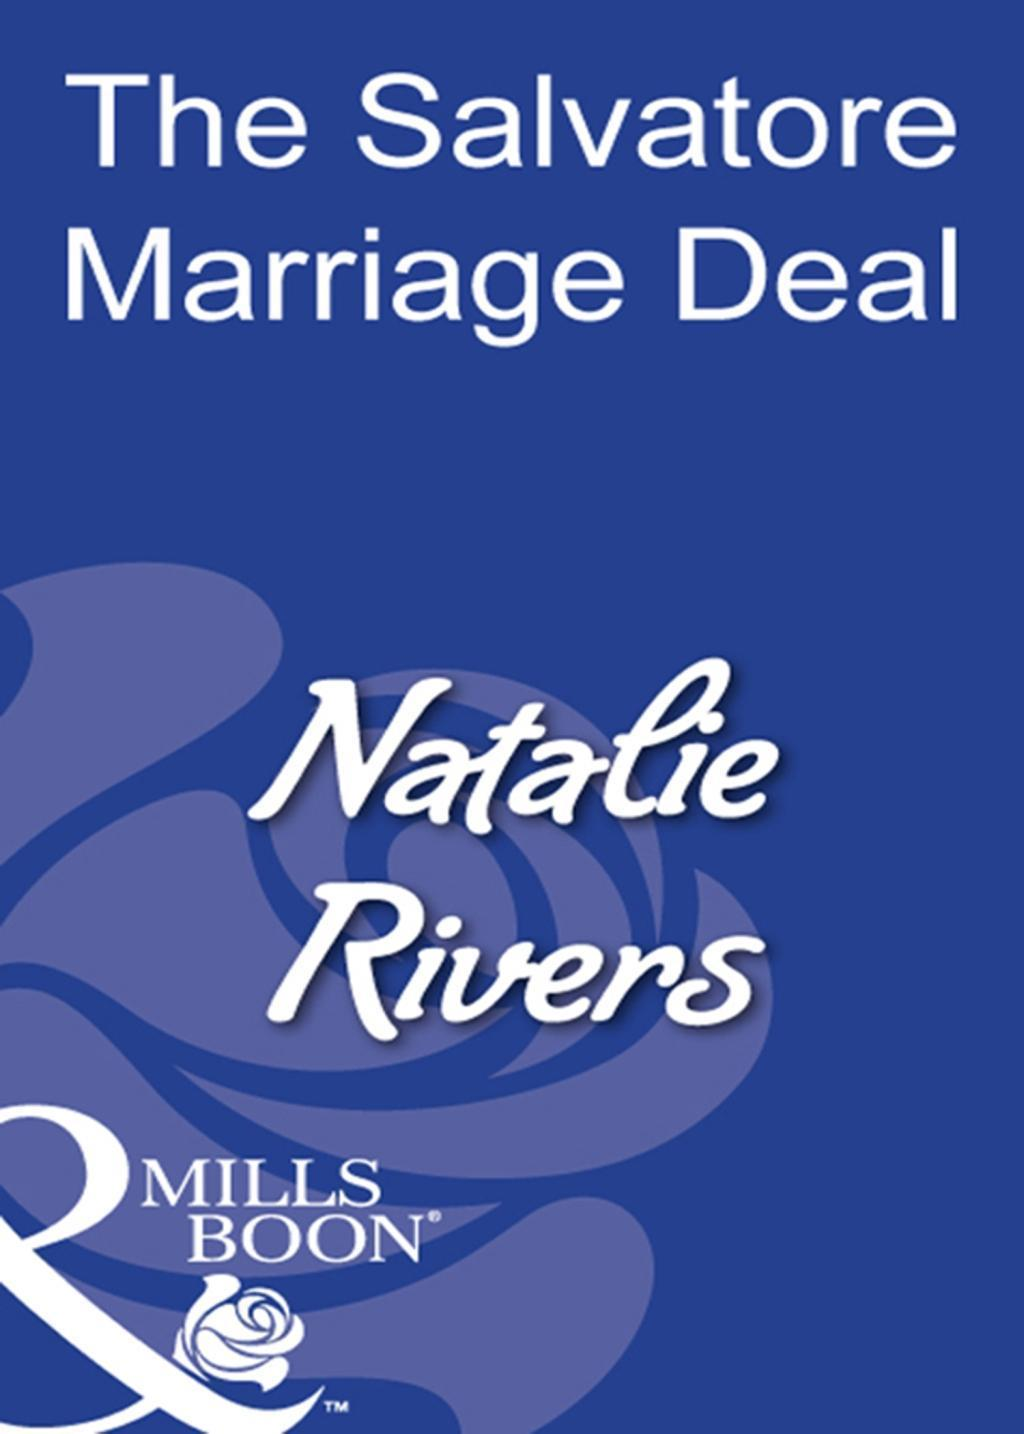 The Salvatore Marriage Deal (Mills & Boon Modern)